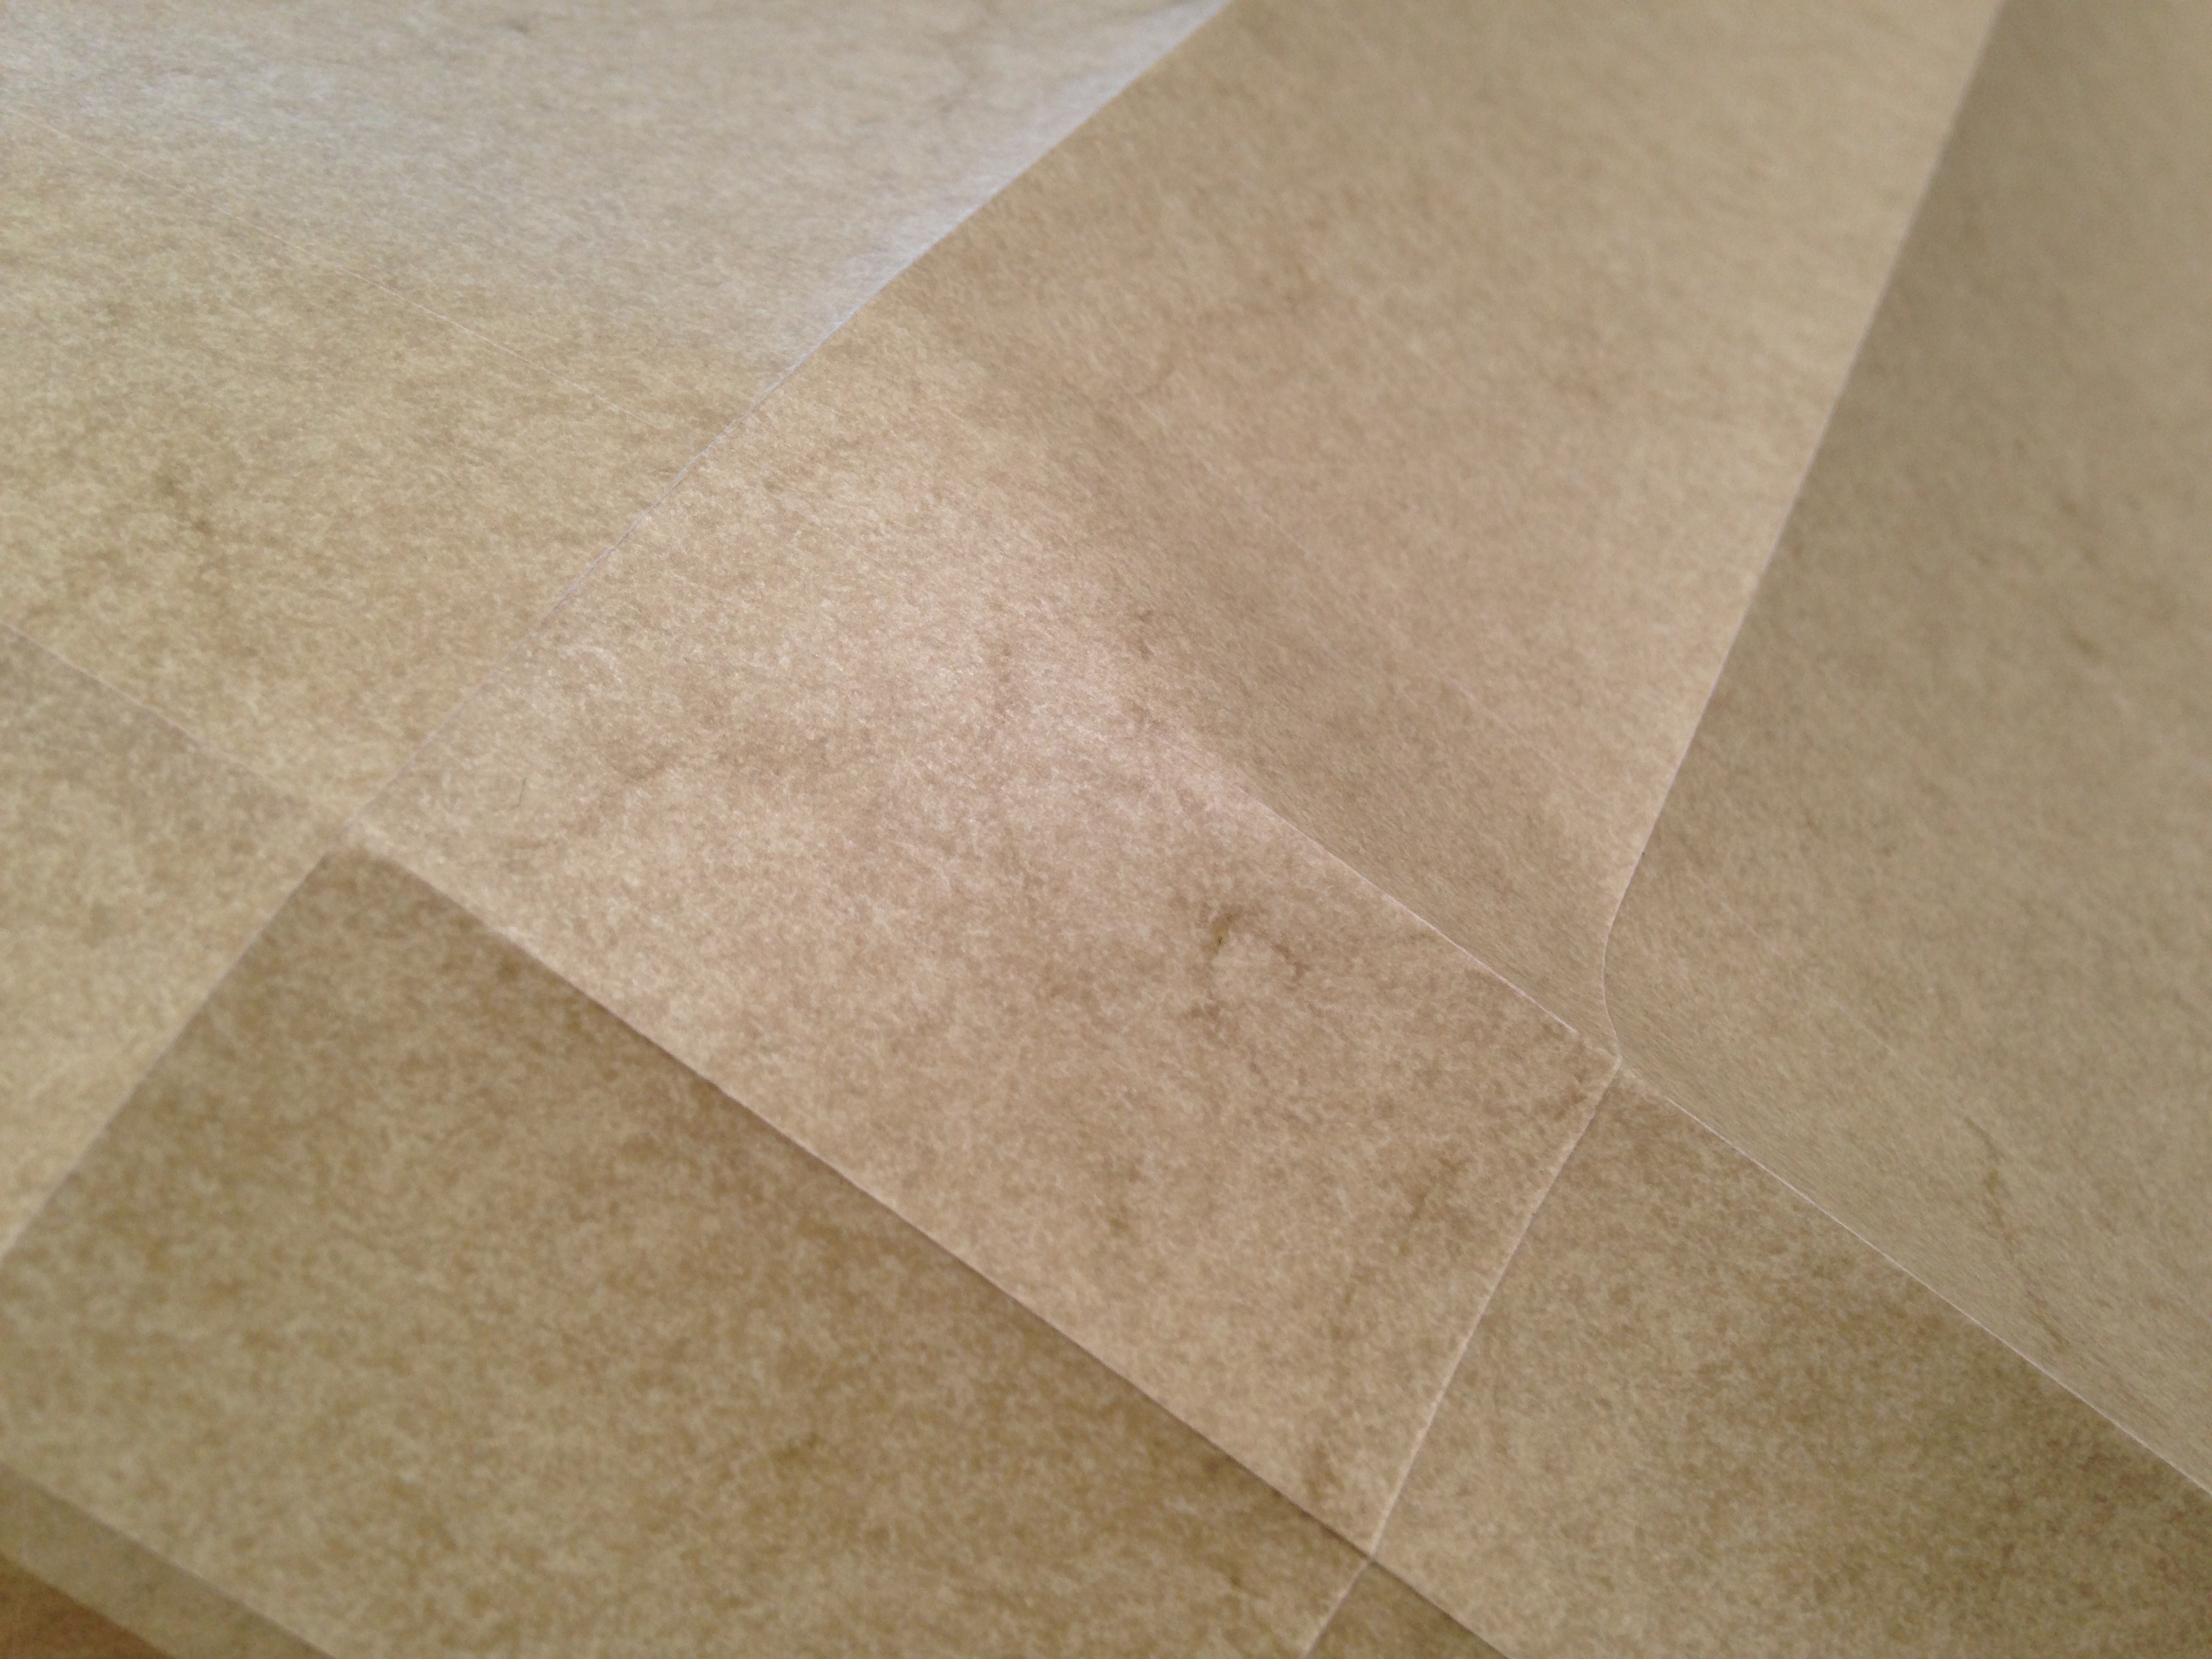 Picture of Laser Etched Paper for Folding Complex Forms